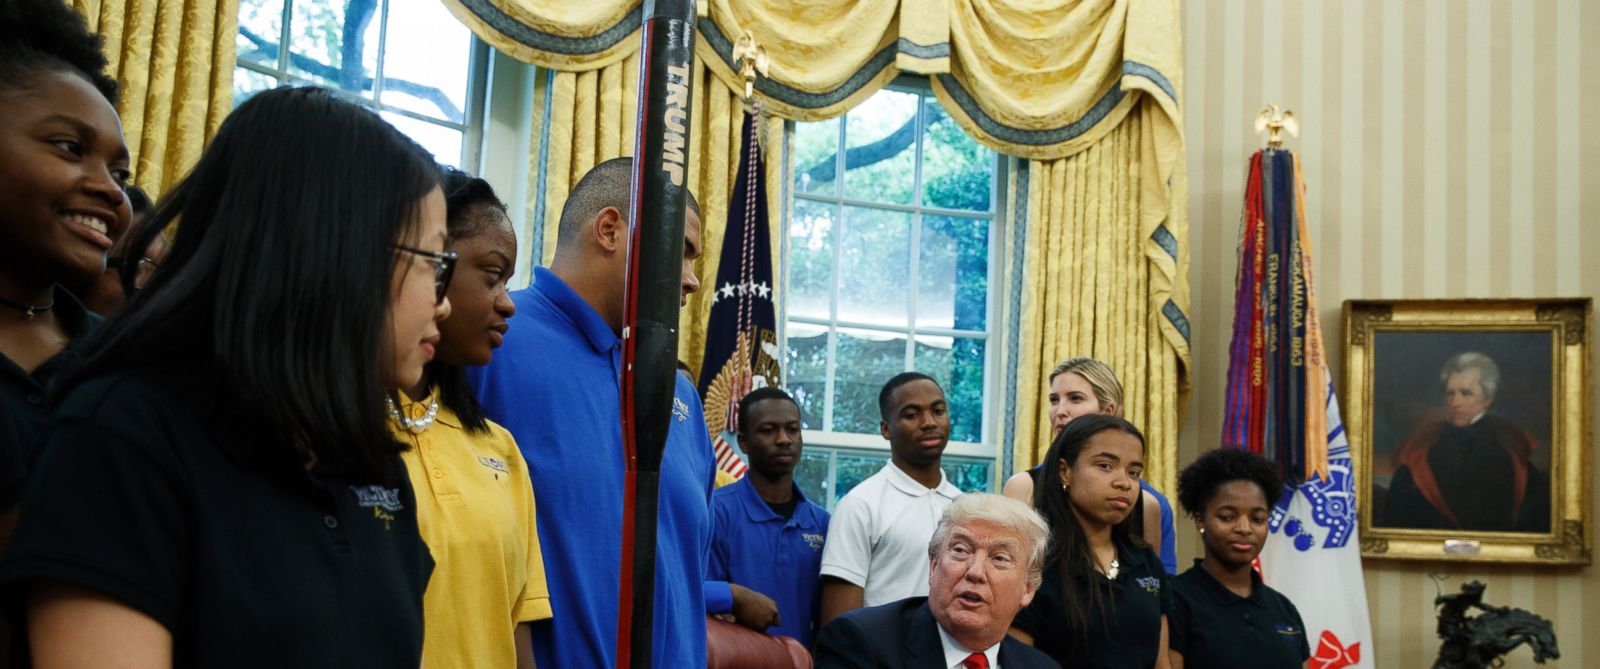 PHOTO: President Donald Trump speaks to members of the rocket team from Victory Christian Center School in Charlotte, N.C., Friday, May 12, 2017, in the Oval Office of the White House in Washington.